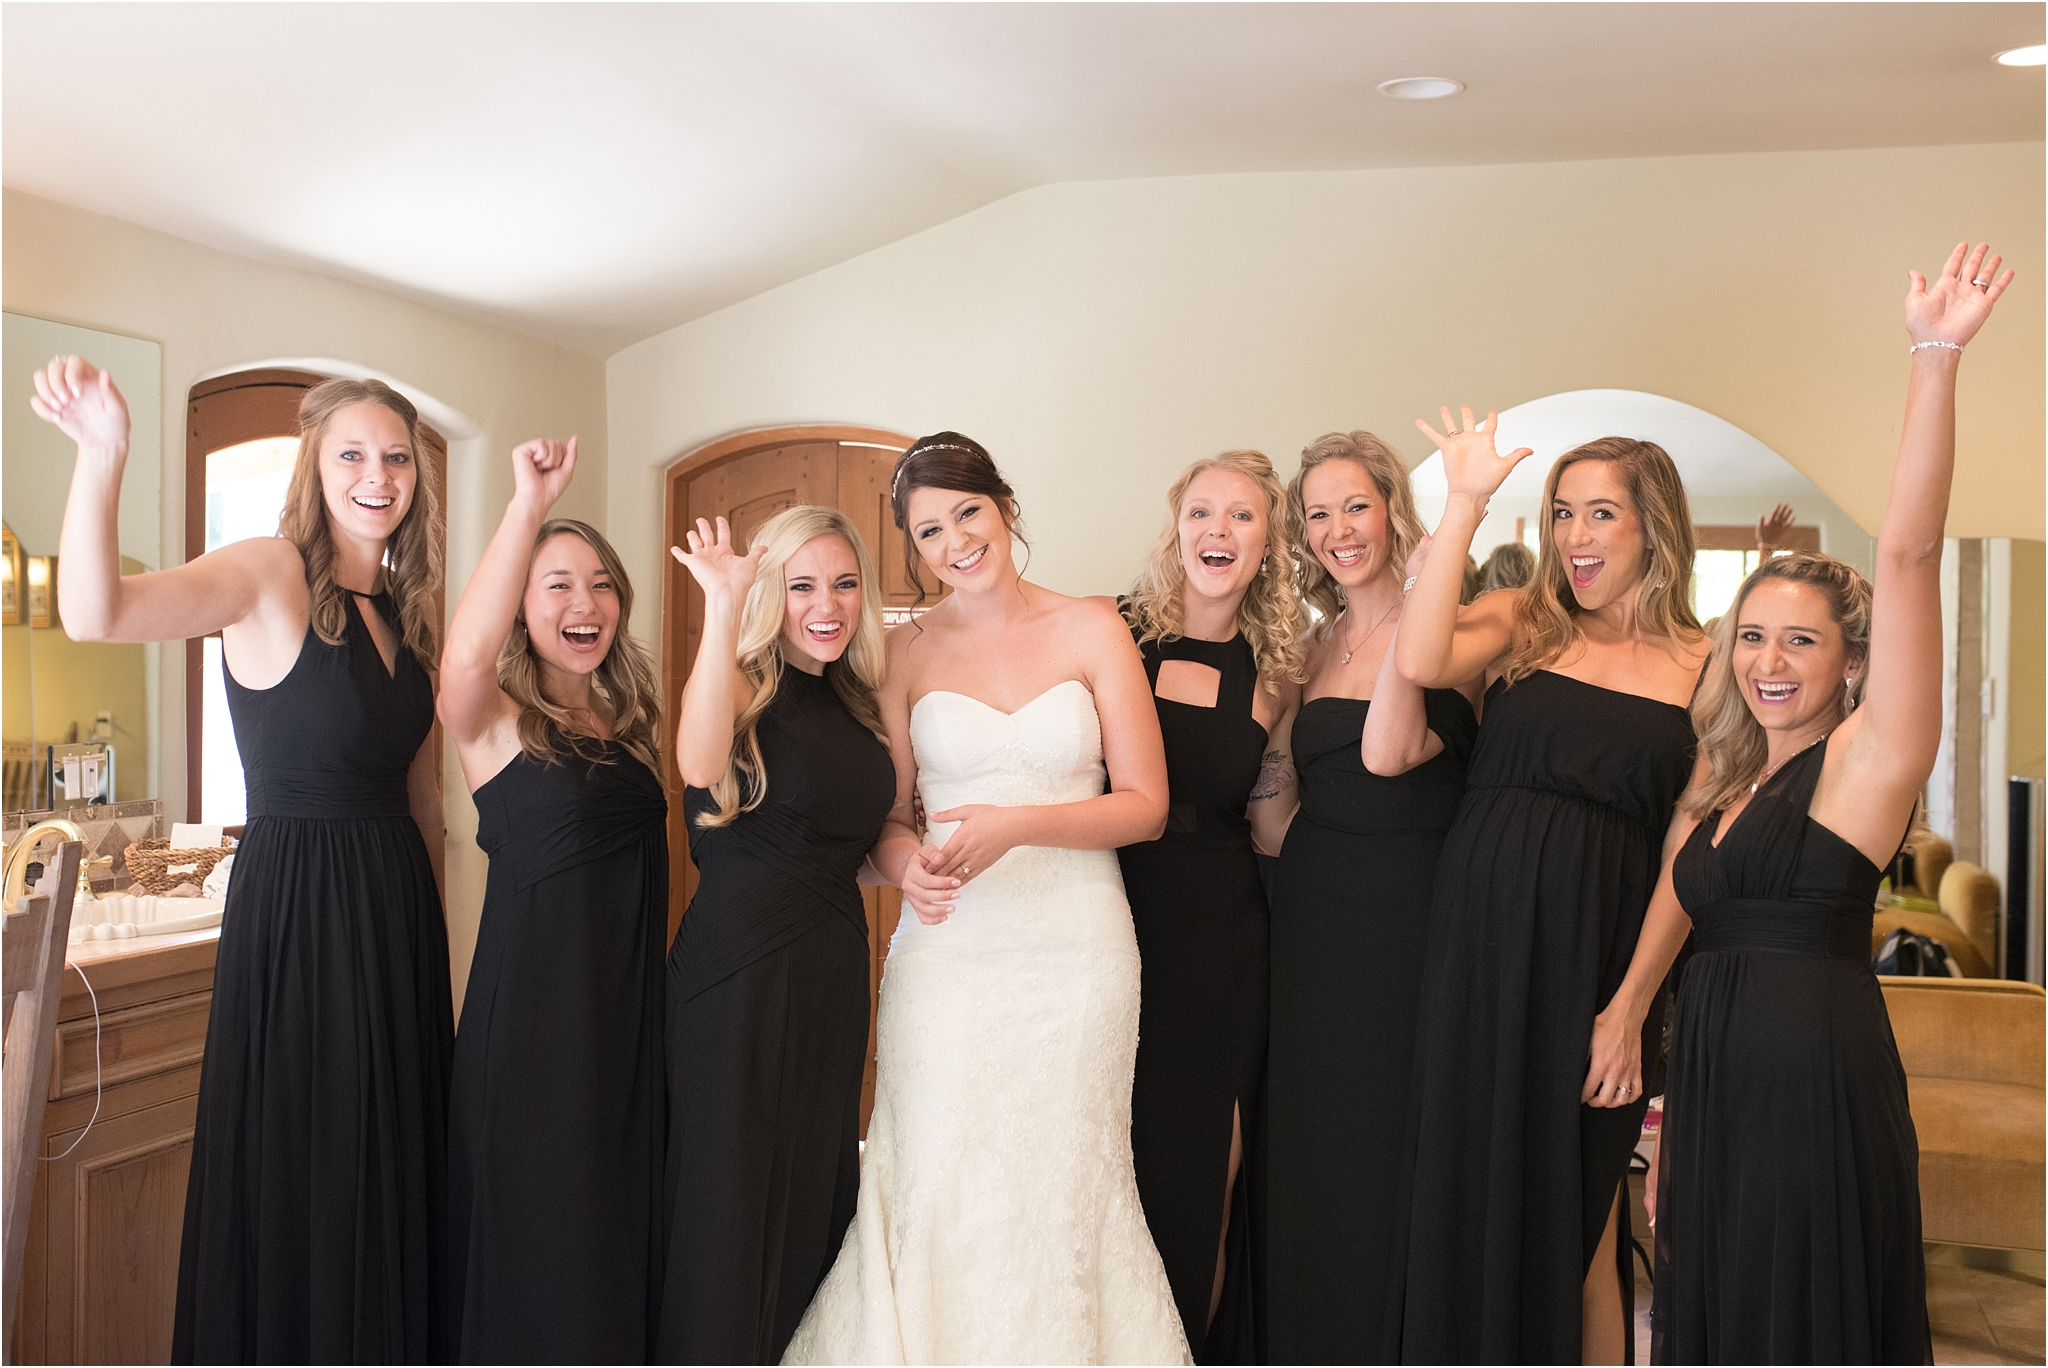 kayla kitts photography - albuquerque wedding photographer - orange september - cjohnson makeup_0009.jpg